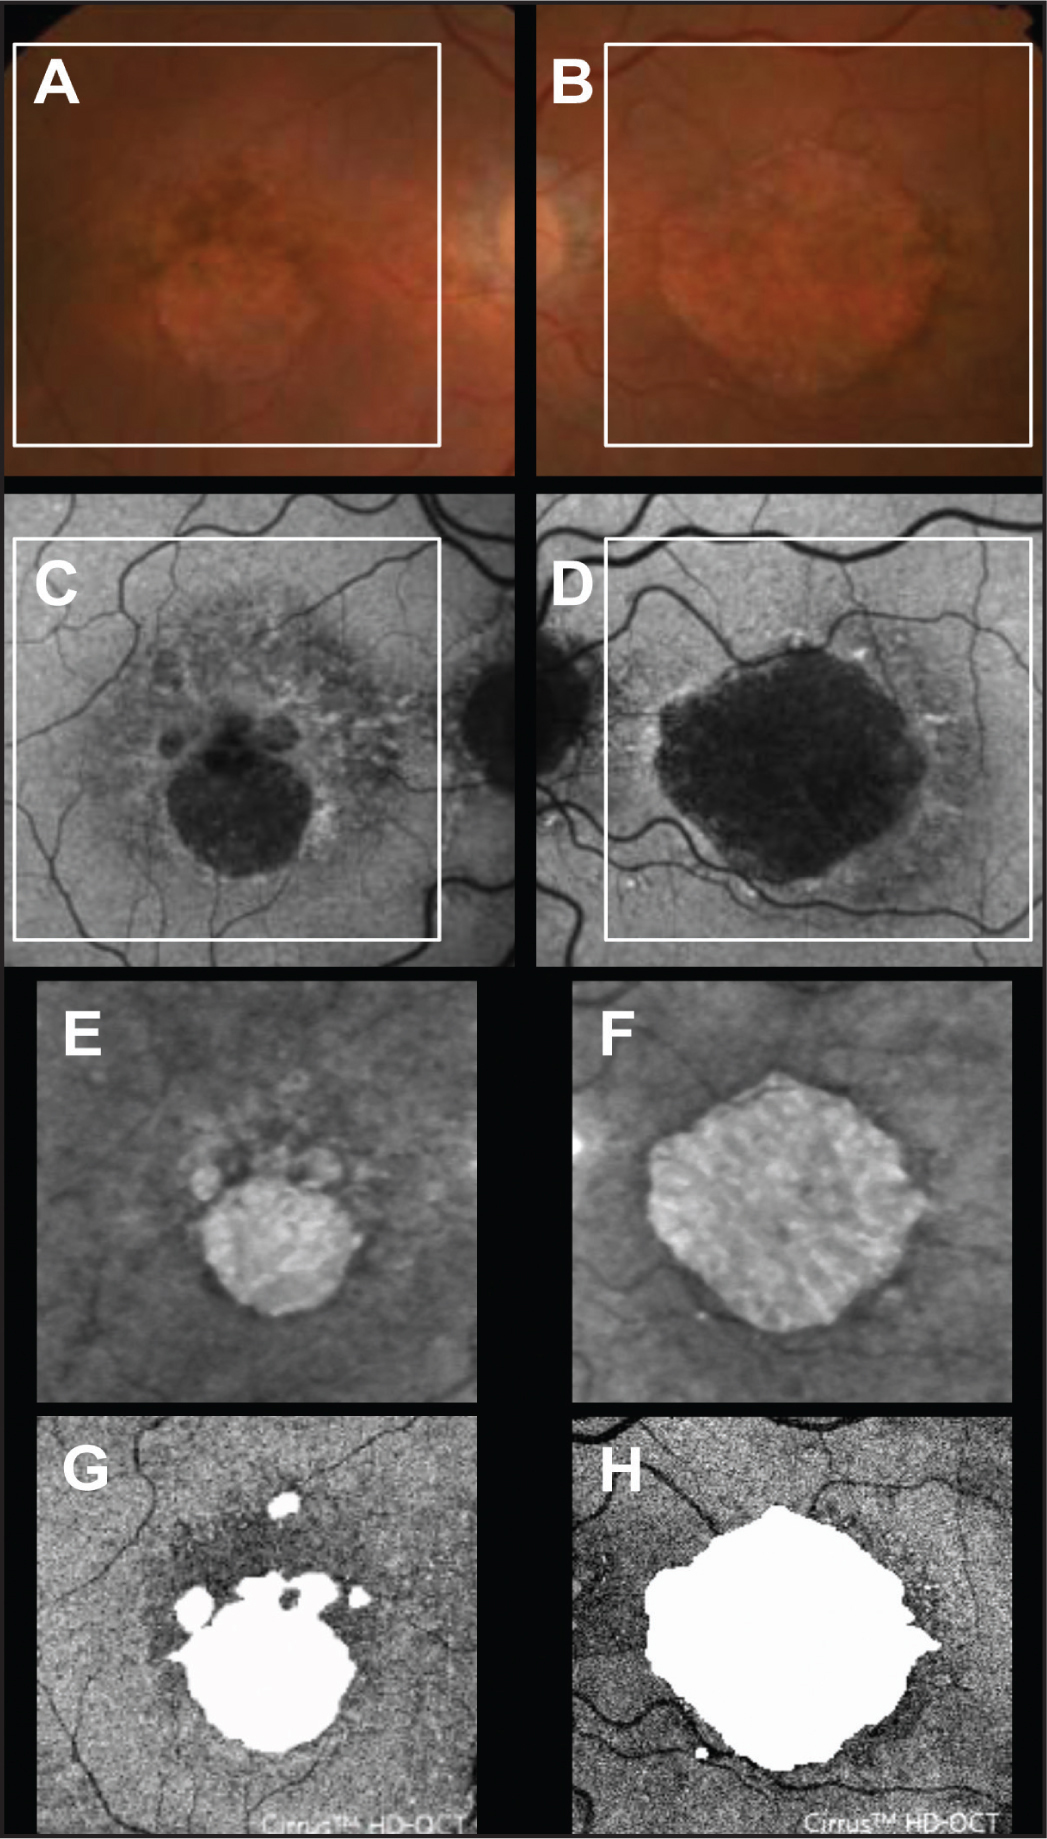 Baseline images of geographic atrophy (GA) from both eyes of an 80-year-old man with nonexudative age-related macular degeneration and focal disruption of the outer retina. (A,B) Color fundus images with a superimposed square depicting the area scanned with spectral domain optical coherence tomography (SD-OCT) imaging. (C,D) Fundus autofluorescence images with a superimposed square depicting the area scanned with SD-OCT imaging. (E,F) Sub-RPE slabs. (G,H) En face images derived from the outer retinal slab described in Figure 1 with the superimposed images of GA (white) derived from the corresponding sub-RPE slabs at baseline.